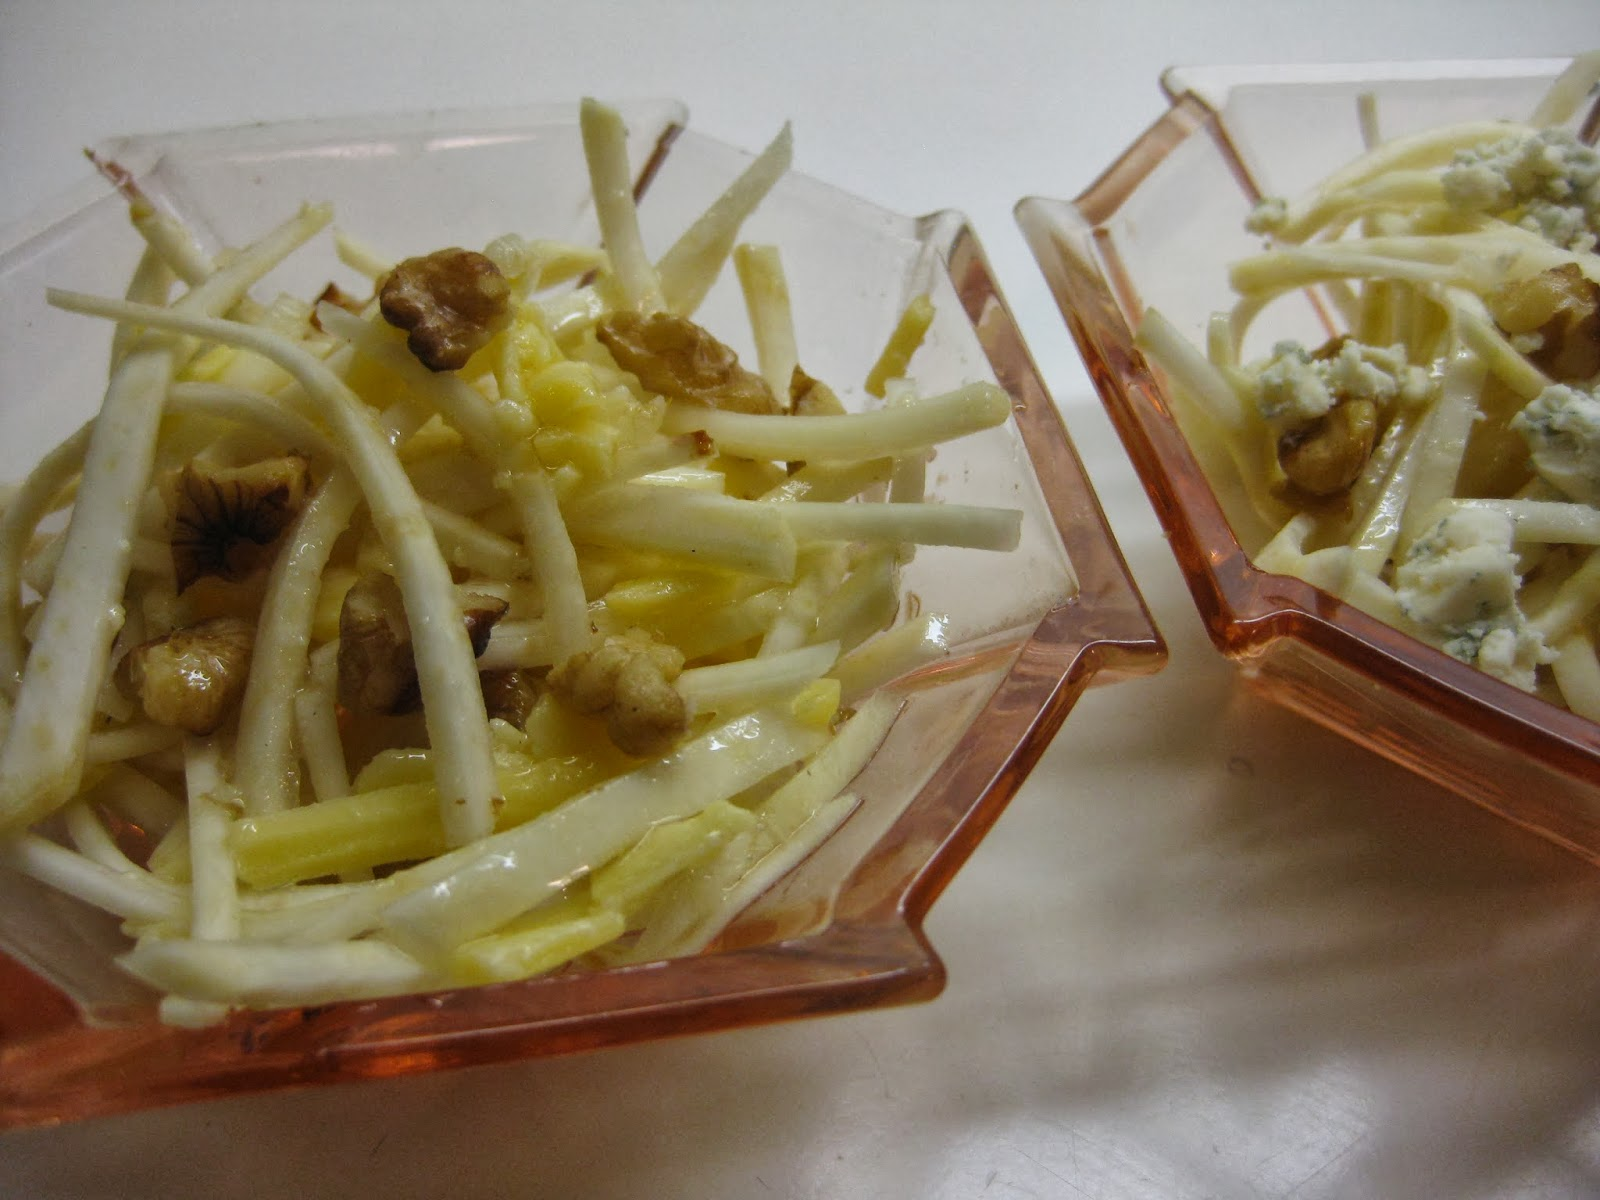 Celeriac salad with apple and walnuts